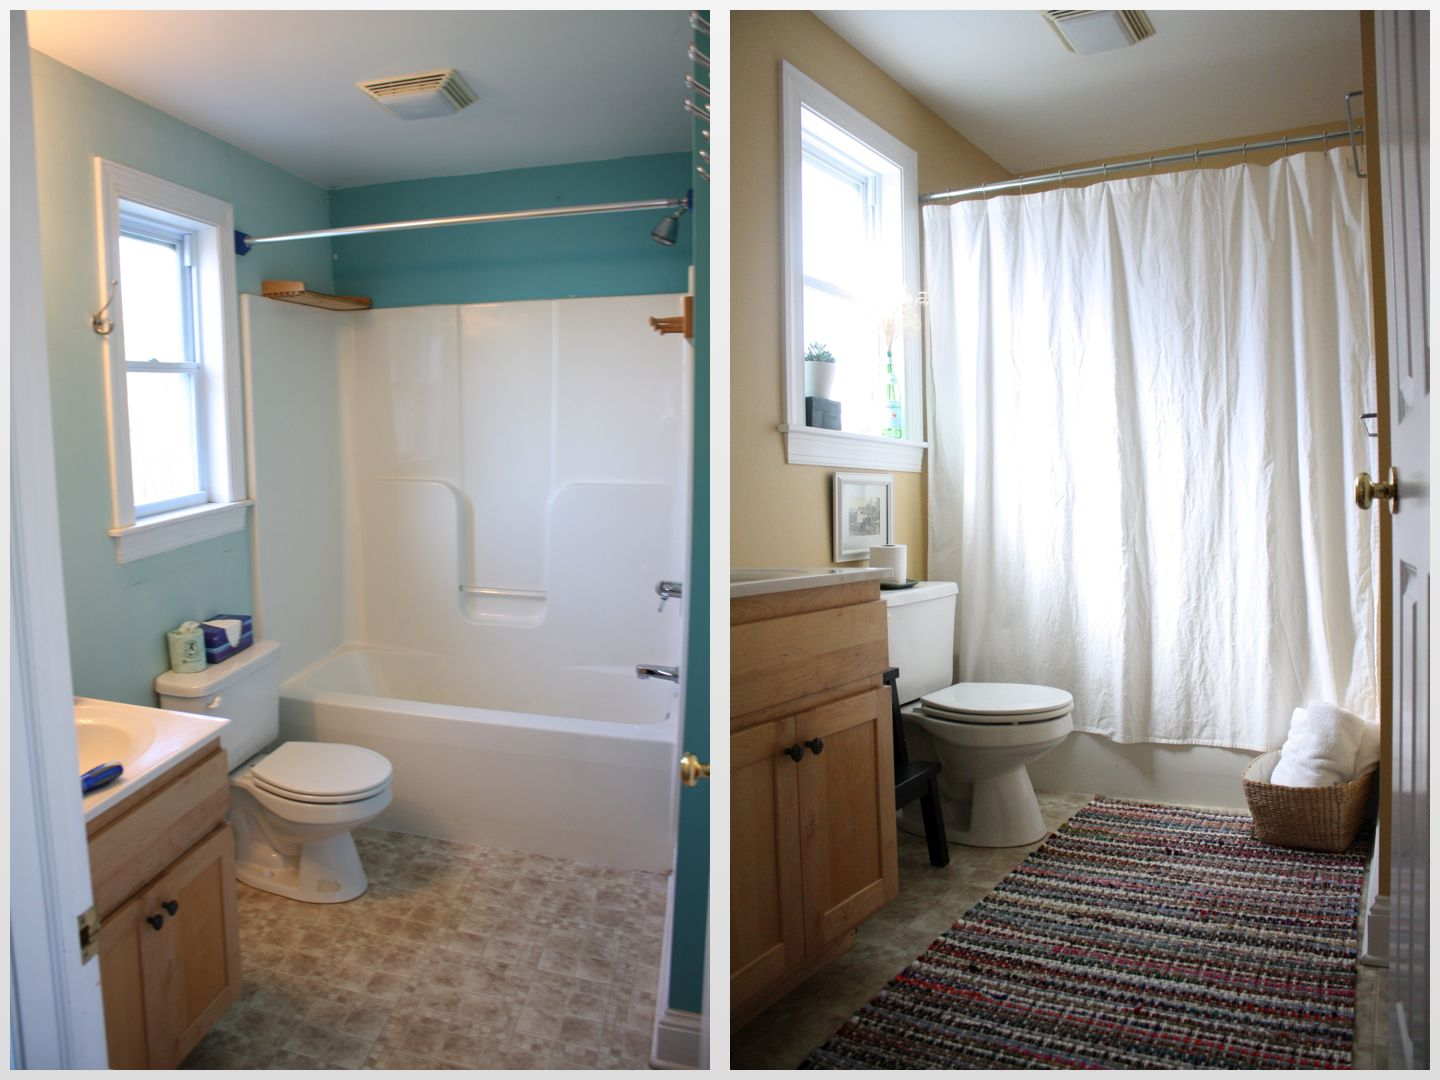 Love The Basket And Rug Very Airy Cheap Bathroom Makeover Bathrooms Remodel Small Bathroom Makeover